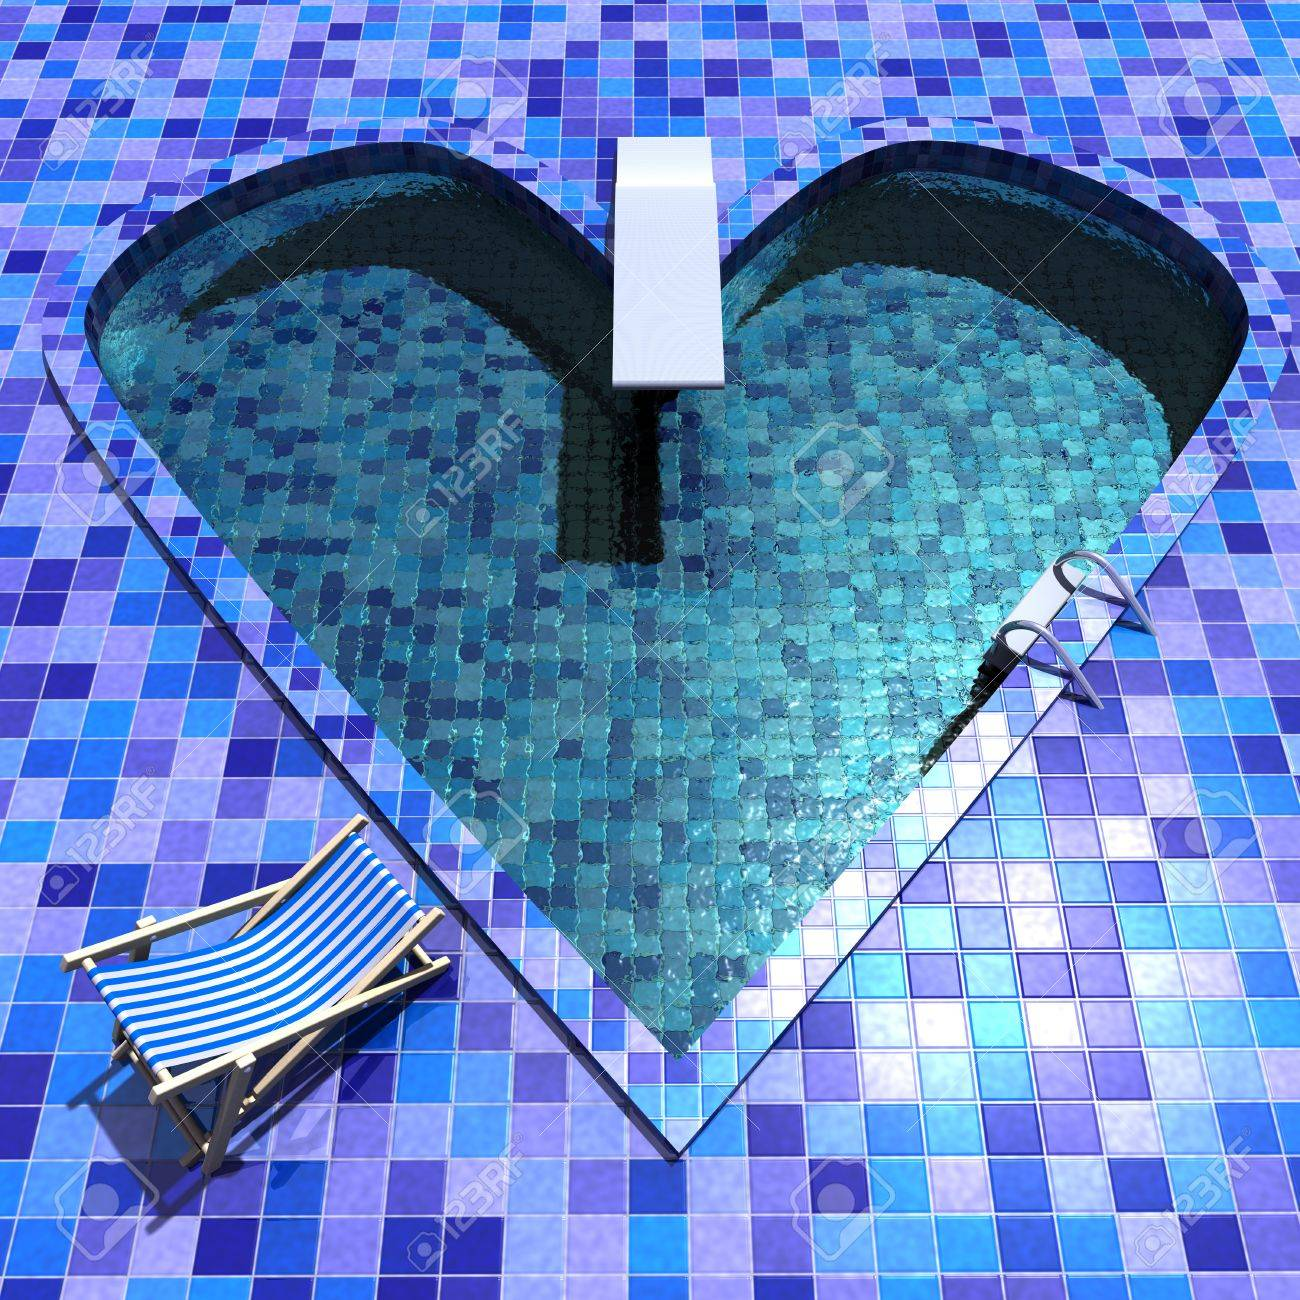 3d Rendering Of A Heart Shaped Swimming Pool Stock Photo   9820955